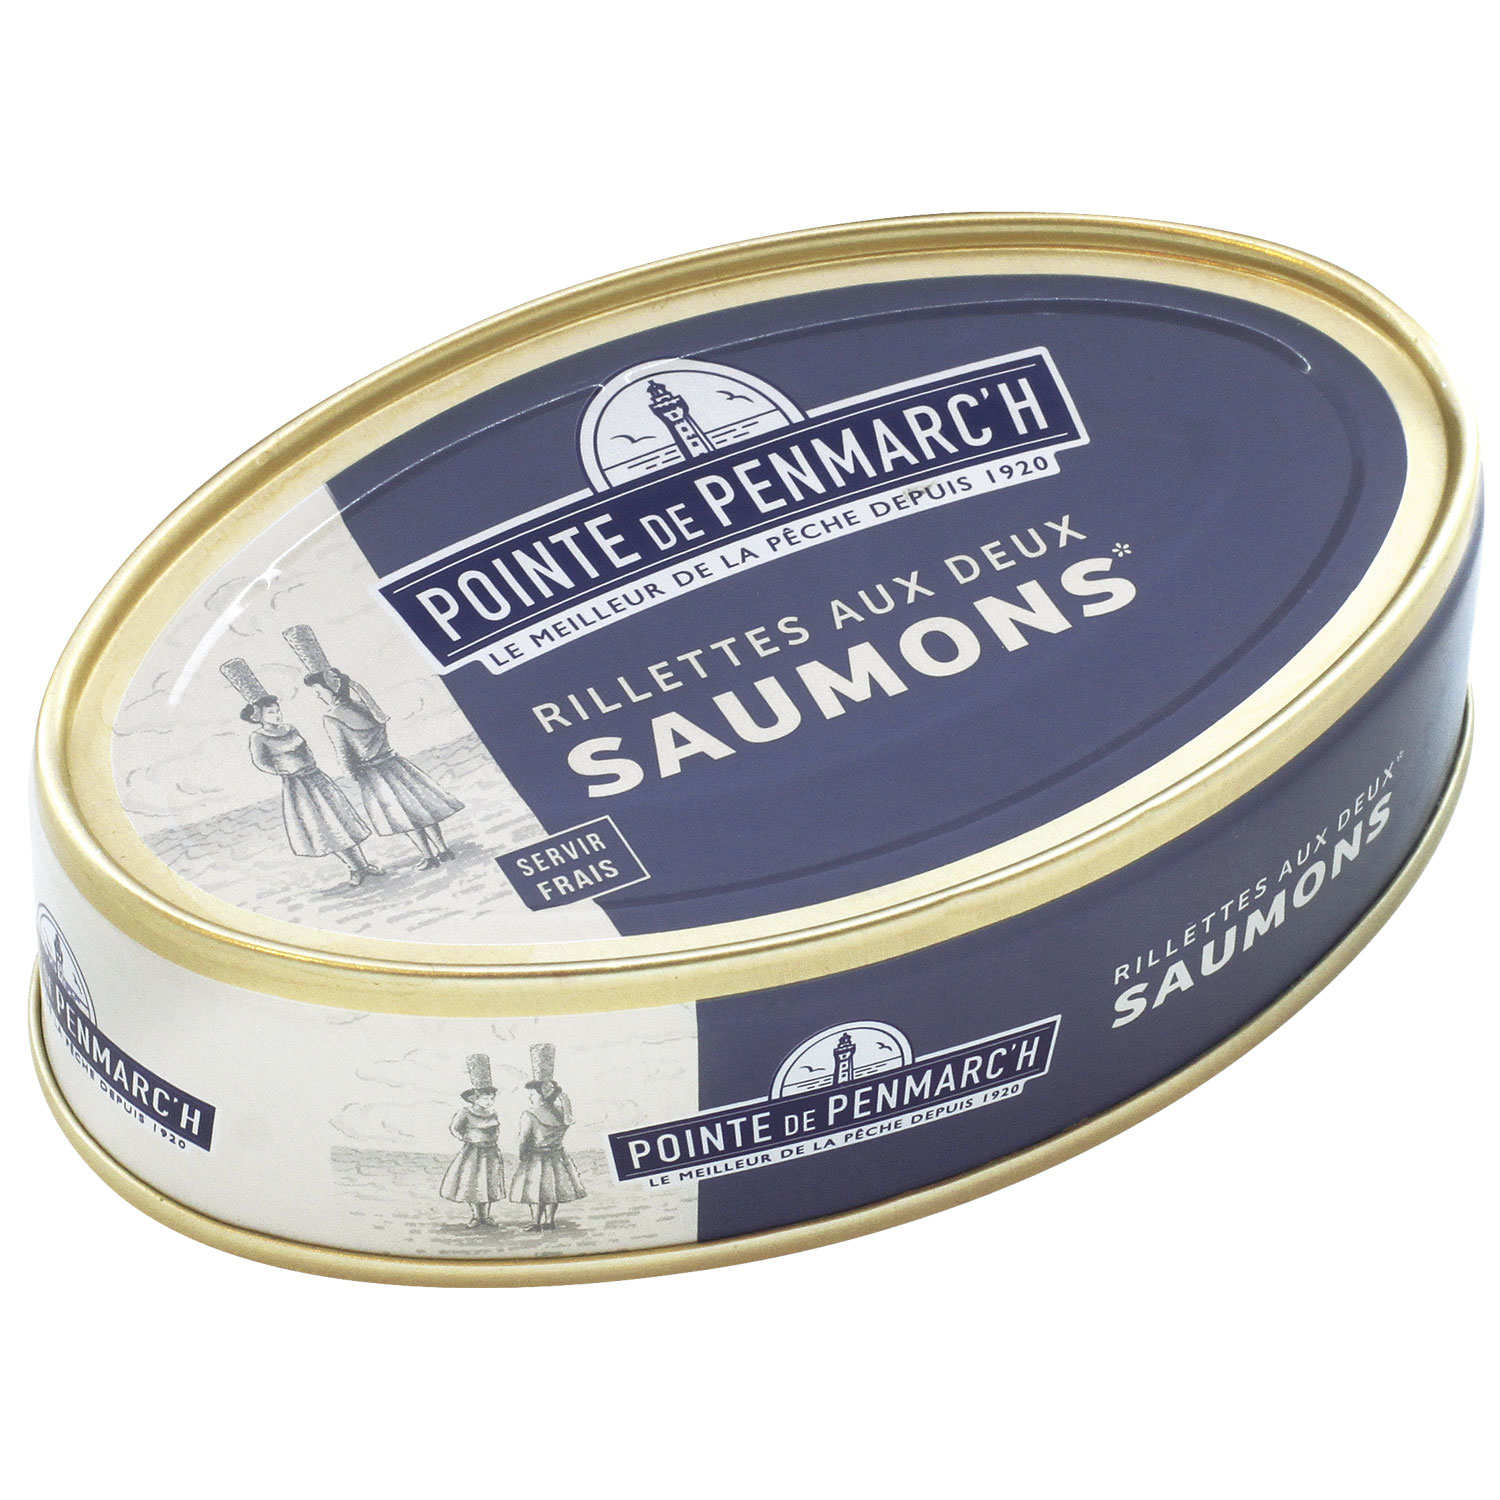 Salmon Rillettes from Brittany